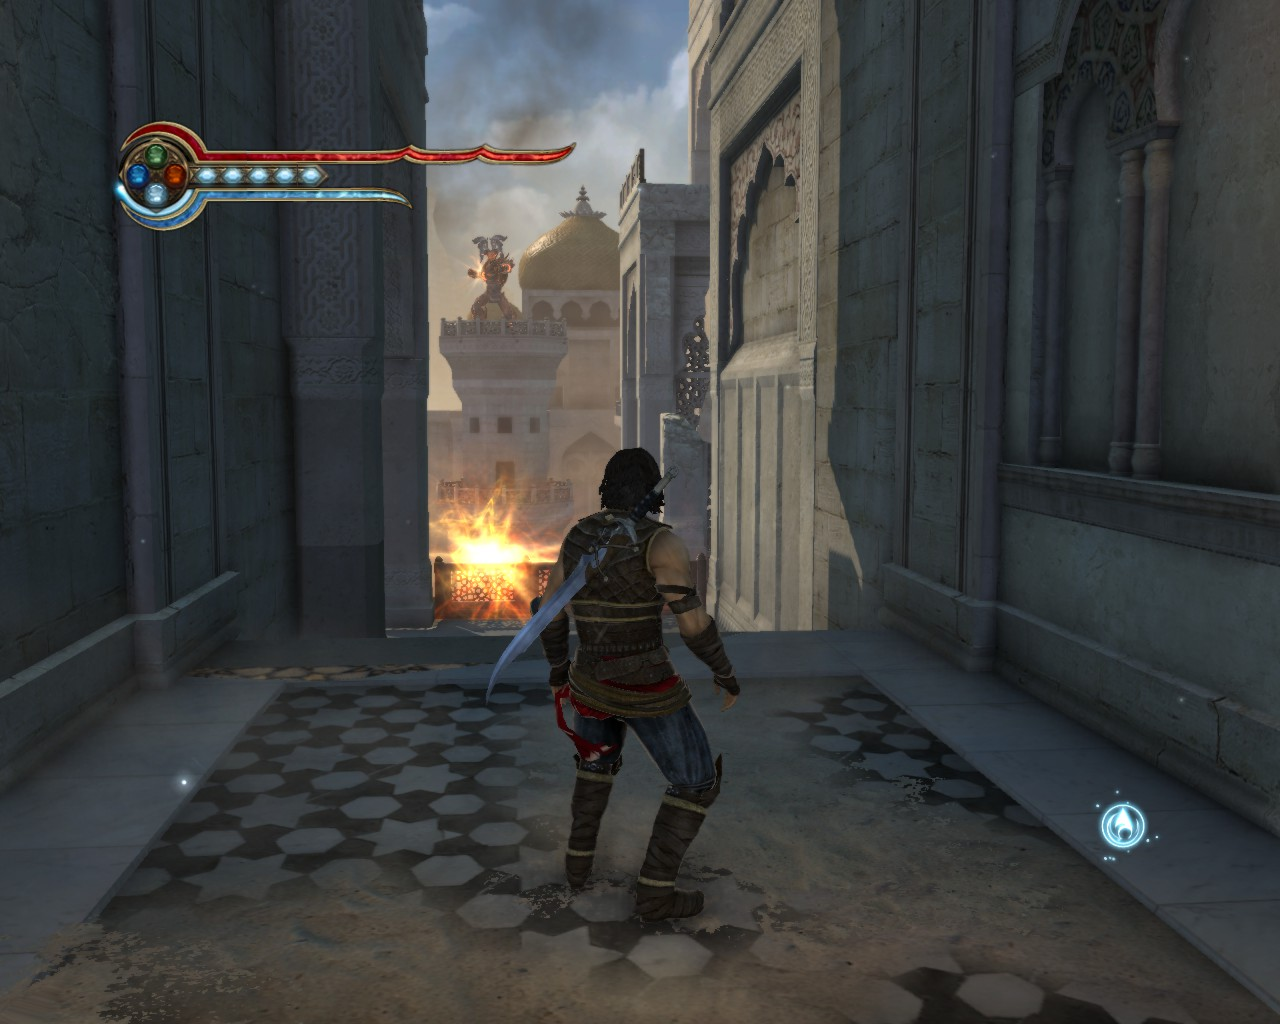 Prince of Persia 2014-06-03 21-49-09-40.jpg - Prince of Persia: The Forgotten Sands